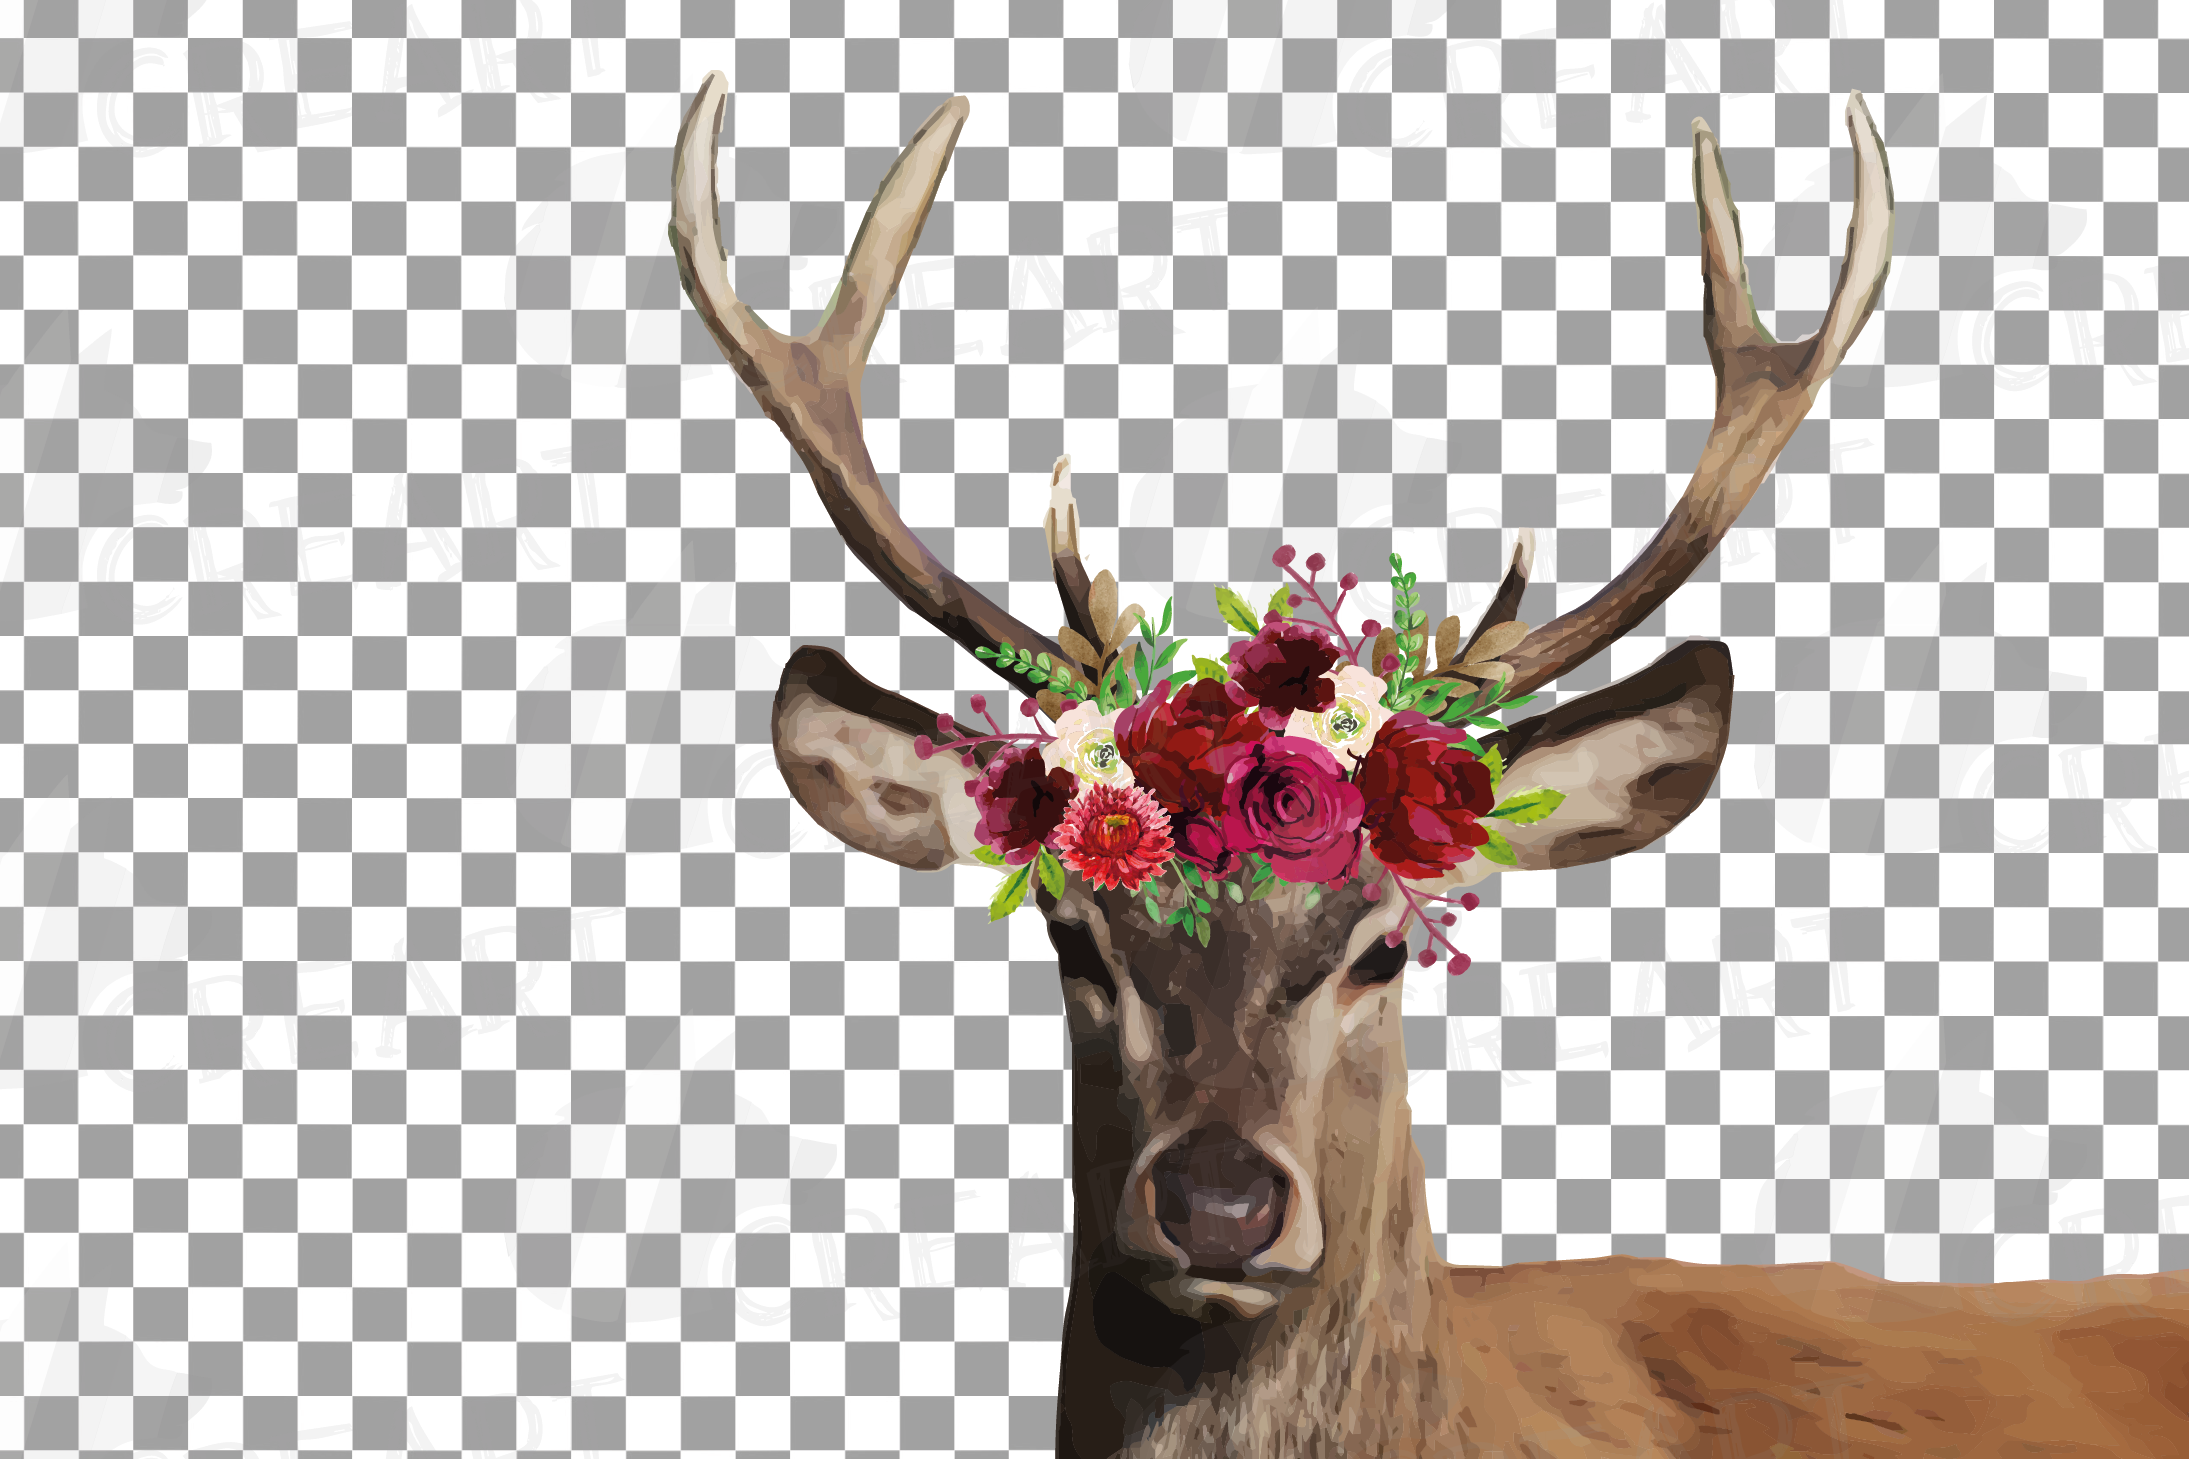 Deer couple with floral burgundy crown match shirt clip art example image 6